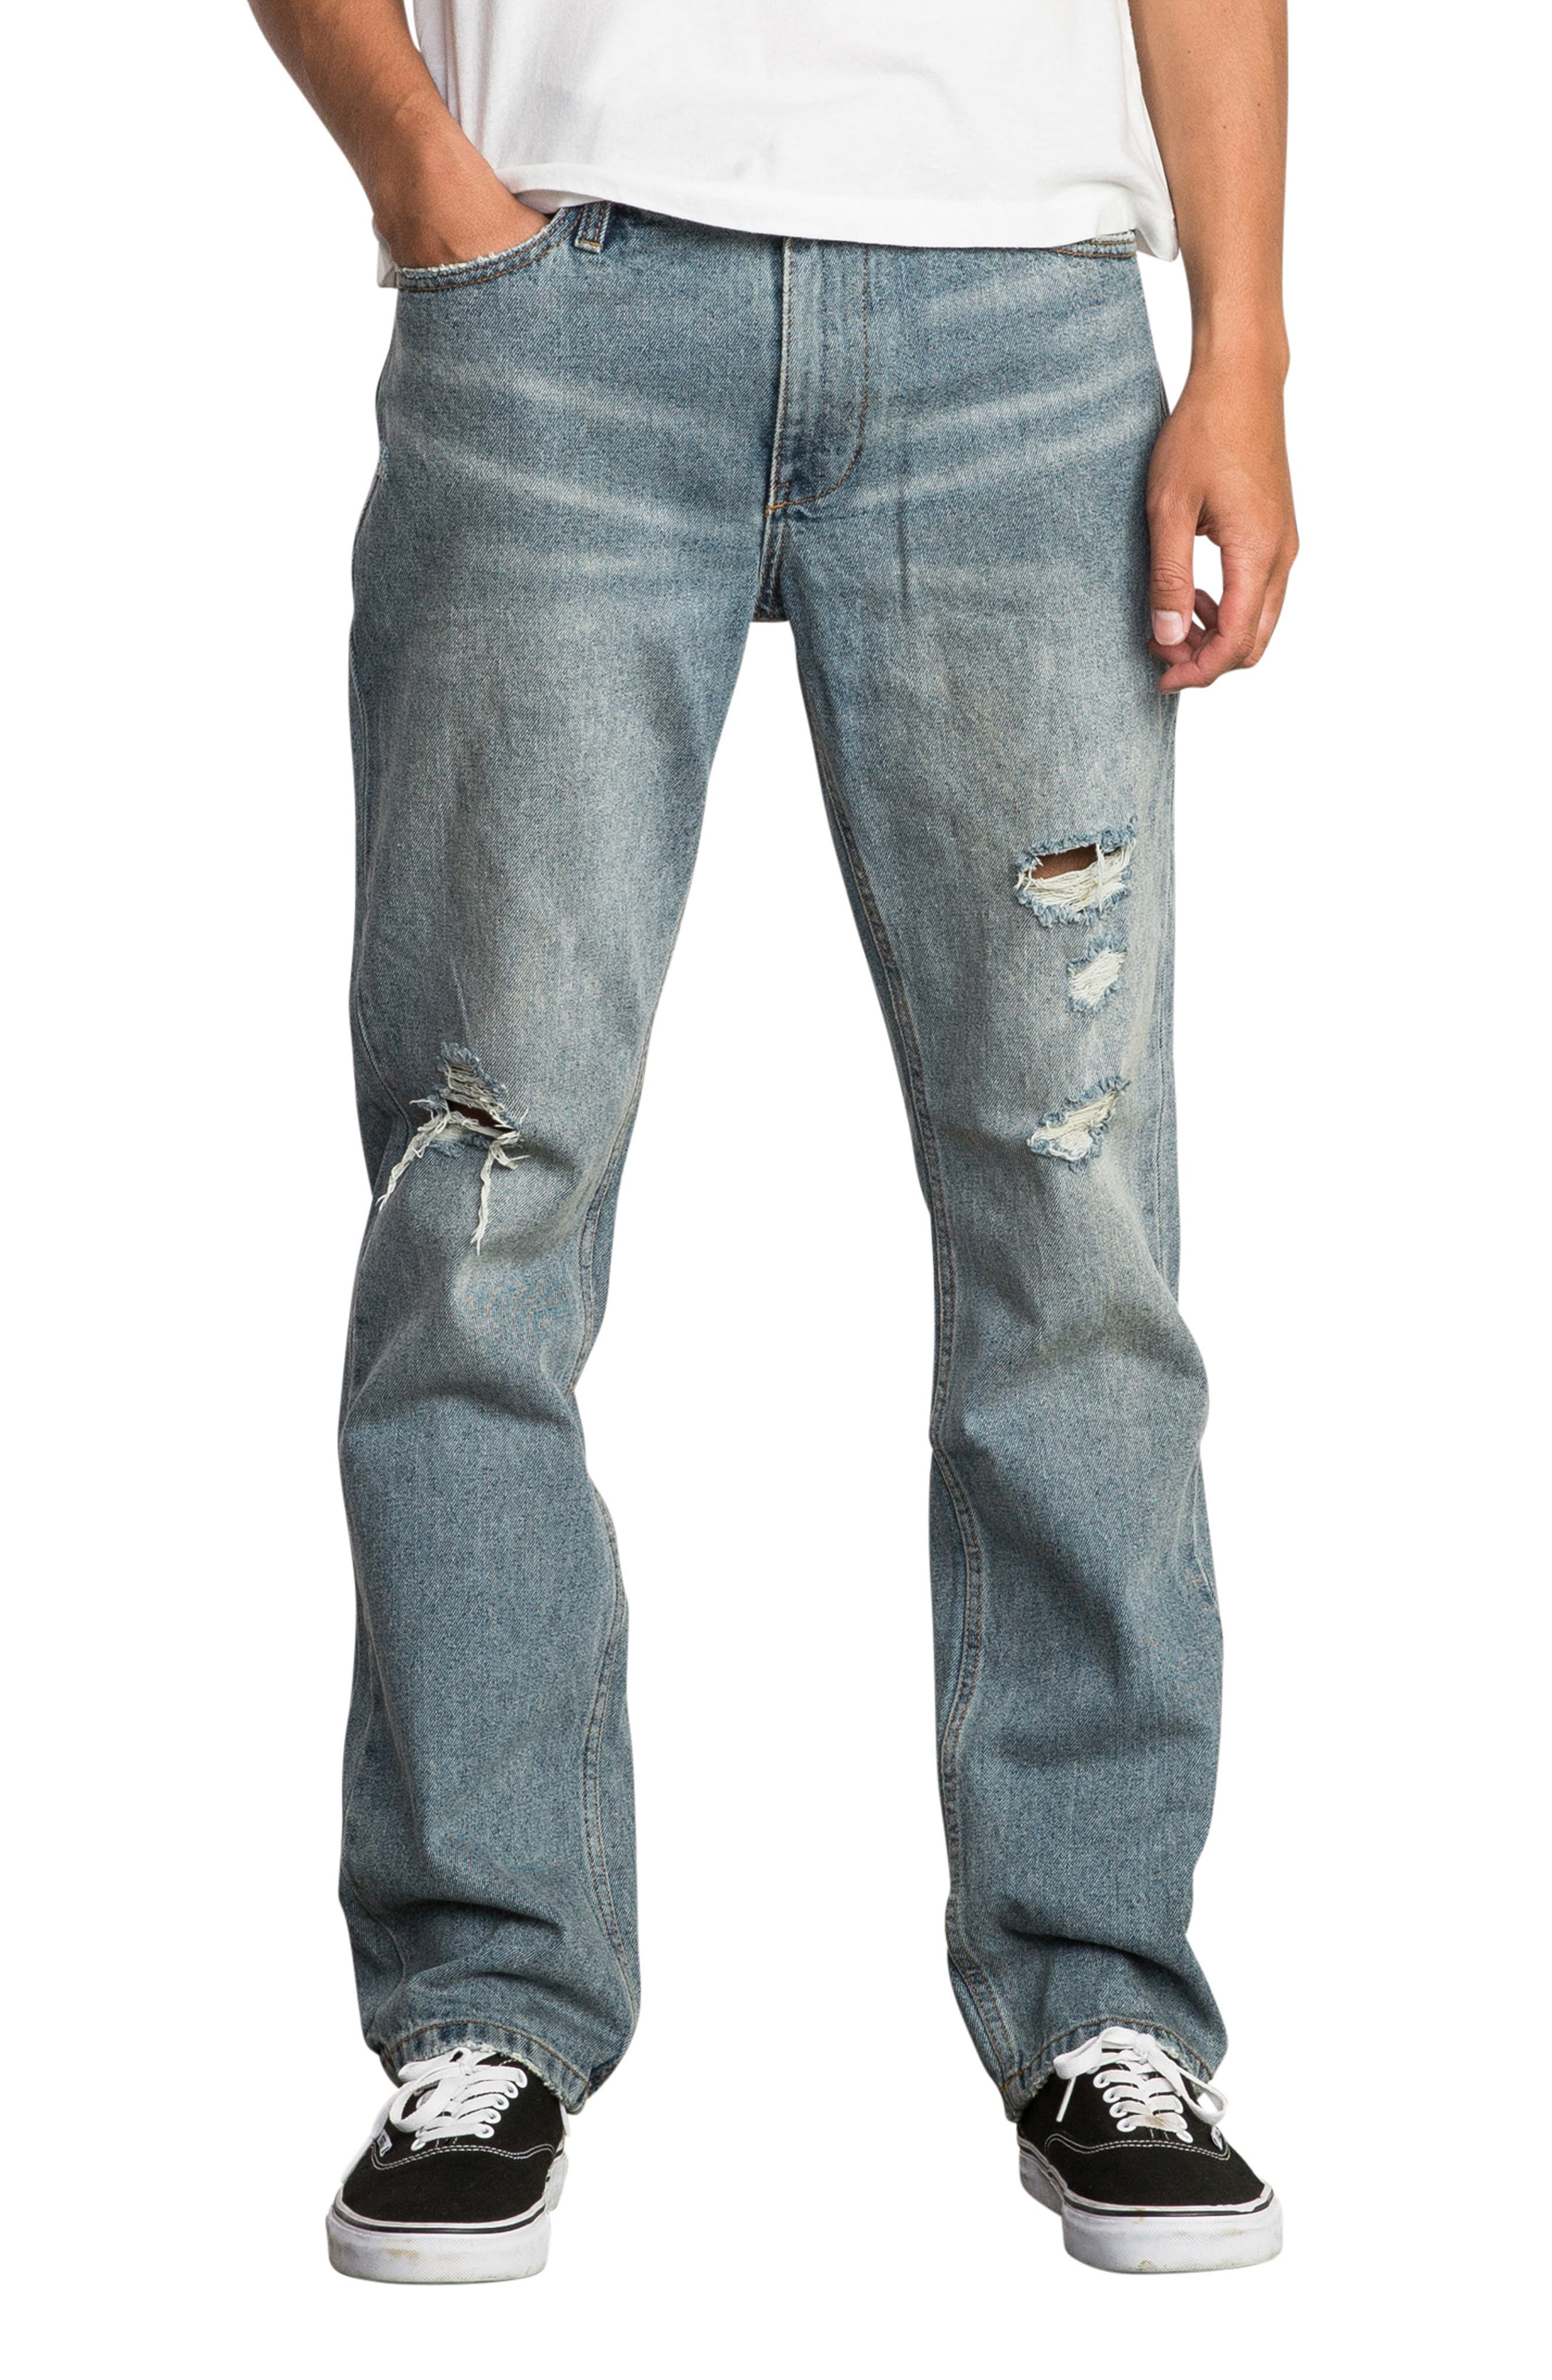 Stay RVCA Slim Fit Jeans,                             Main thumbnail 1, color,                             WORN BLUE